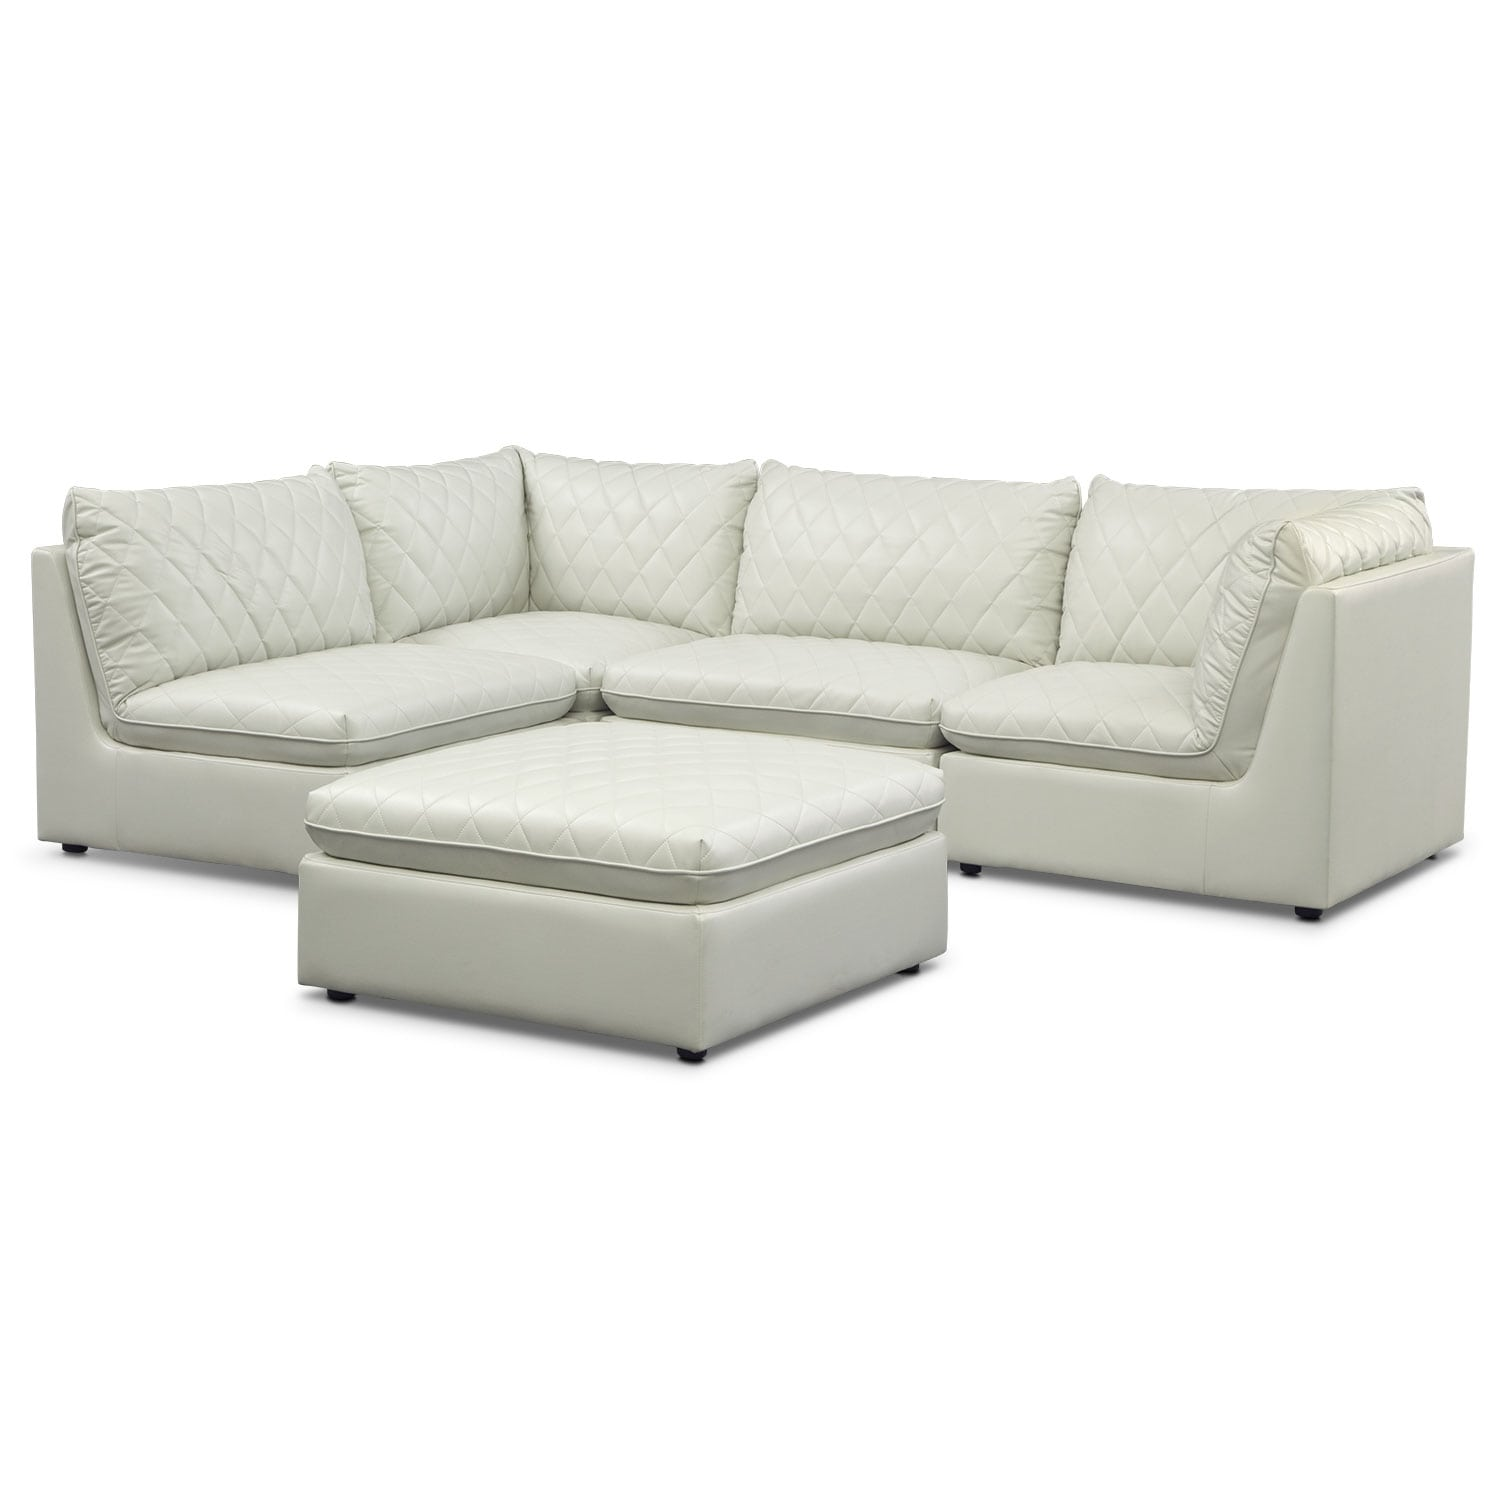 Living Room Furniture - Coco 4-Piece Sectional and Cocktail Ottoman Set - Mist